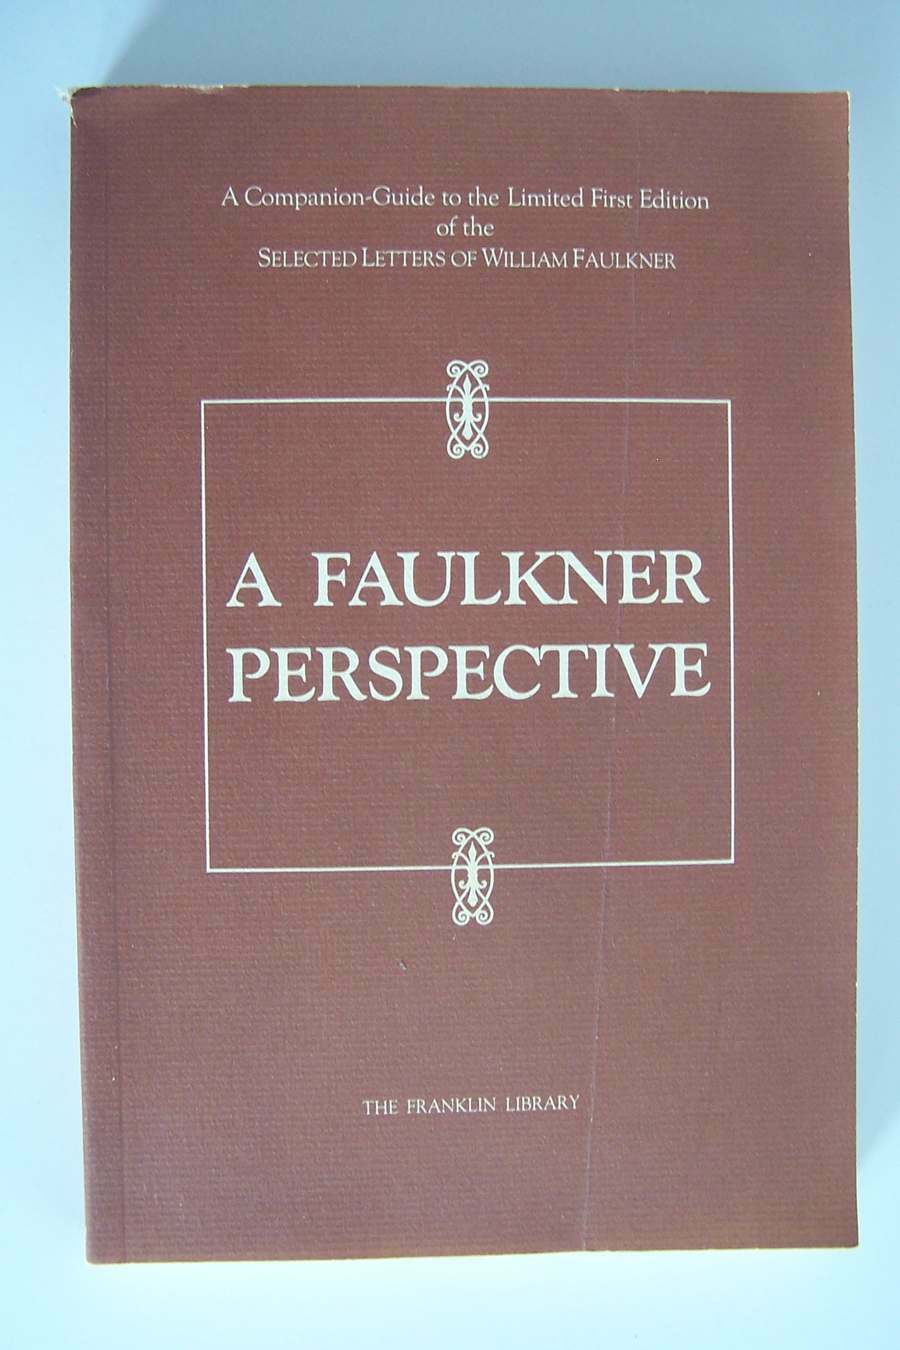 A Faulkner Perspective: Companion-Guide to the Limited